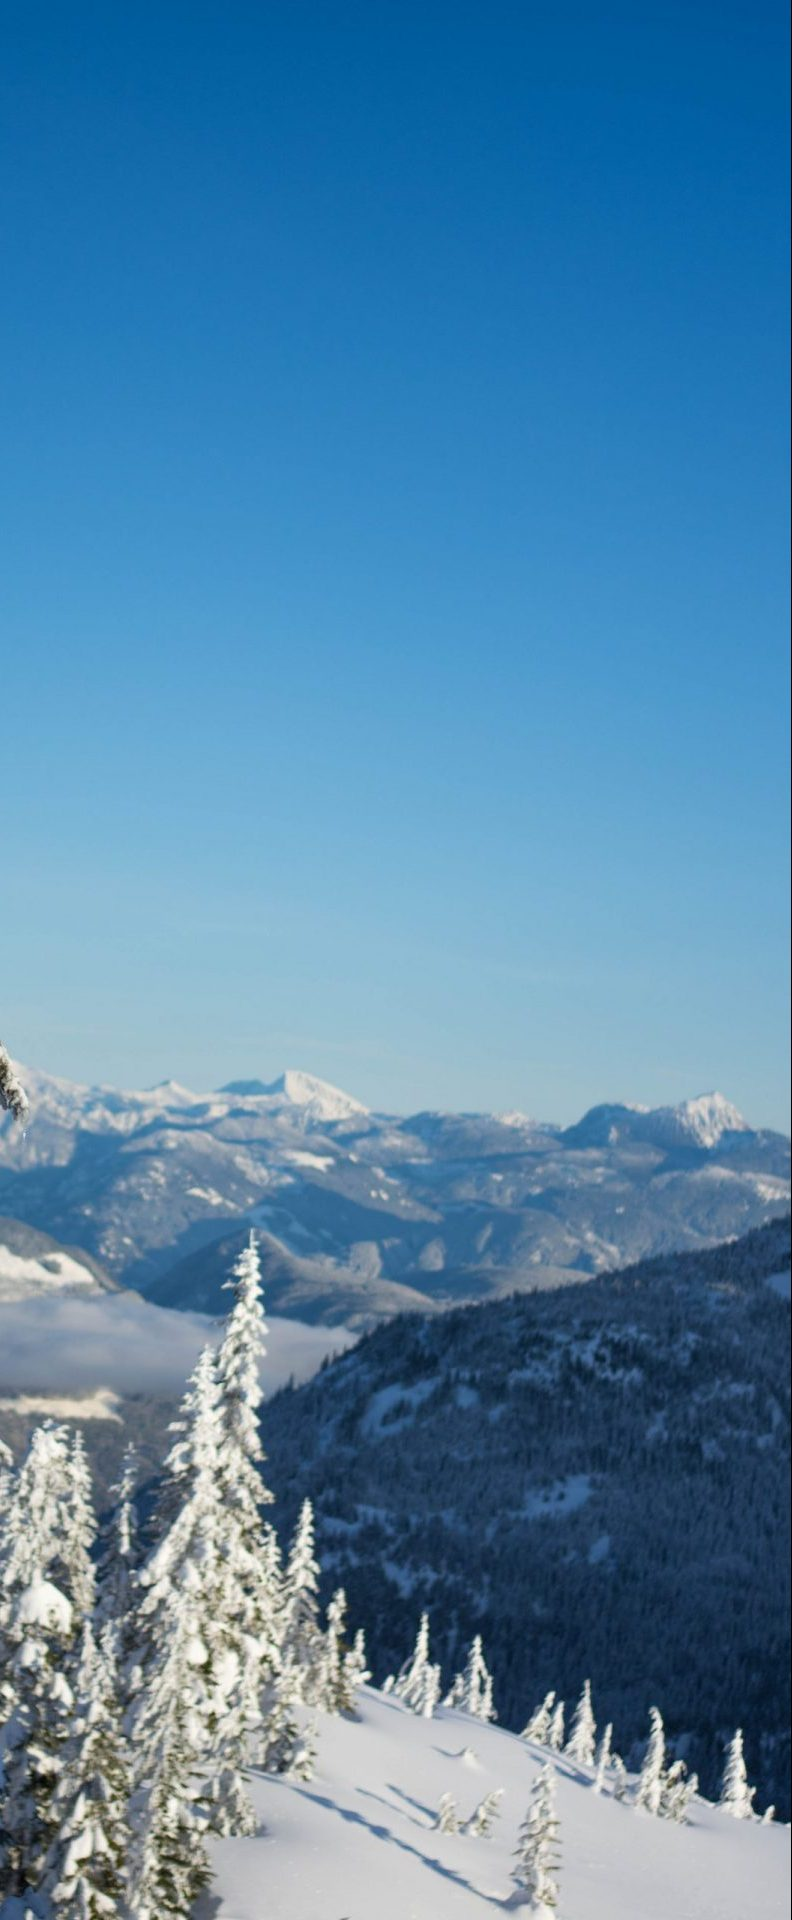 Sunny Day on the Mountain at Sasquatch Resort